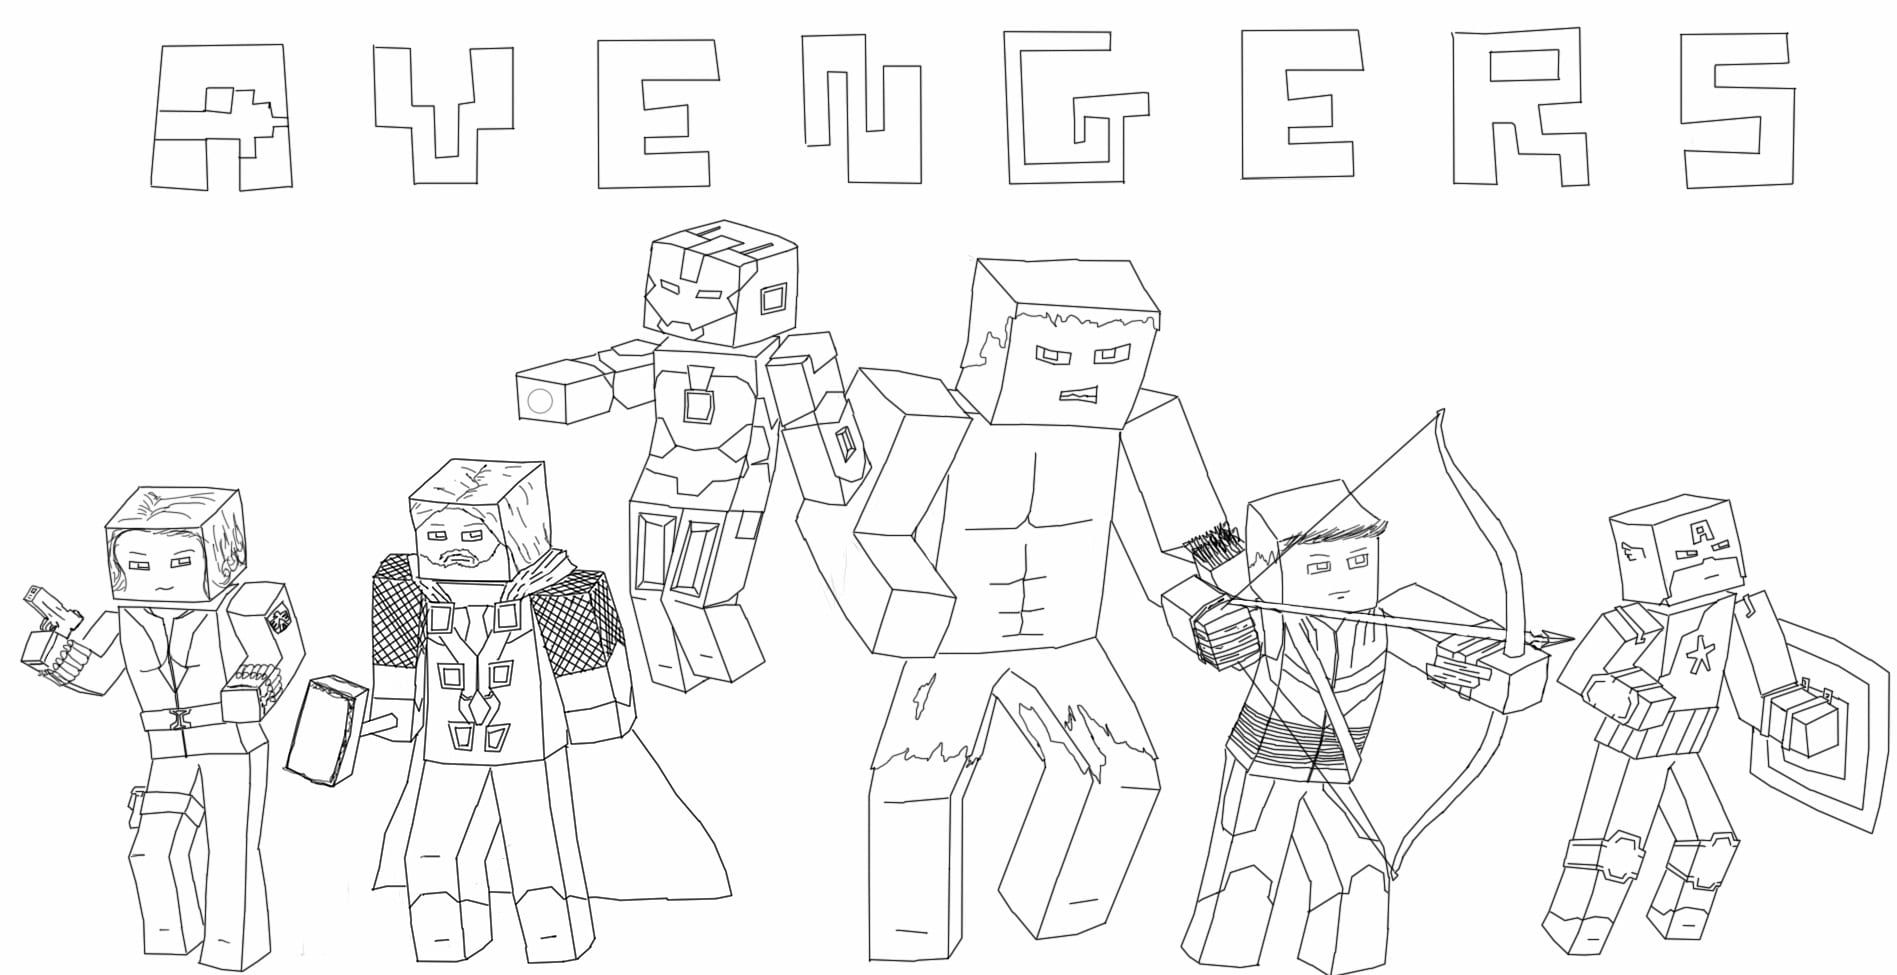 Minecraft Coloring Pages Print Them For Free 100 Pictures From The Game Coloring Pages Minecraft Coloring Pages Cartoon Coloring Pages